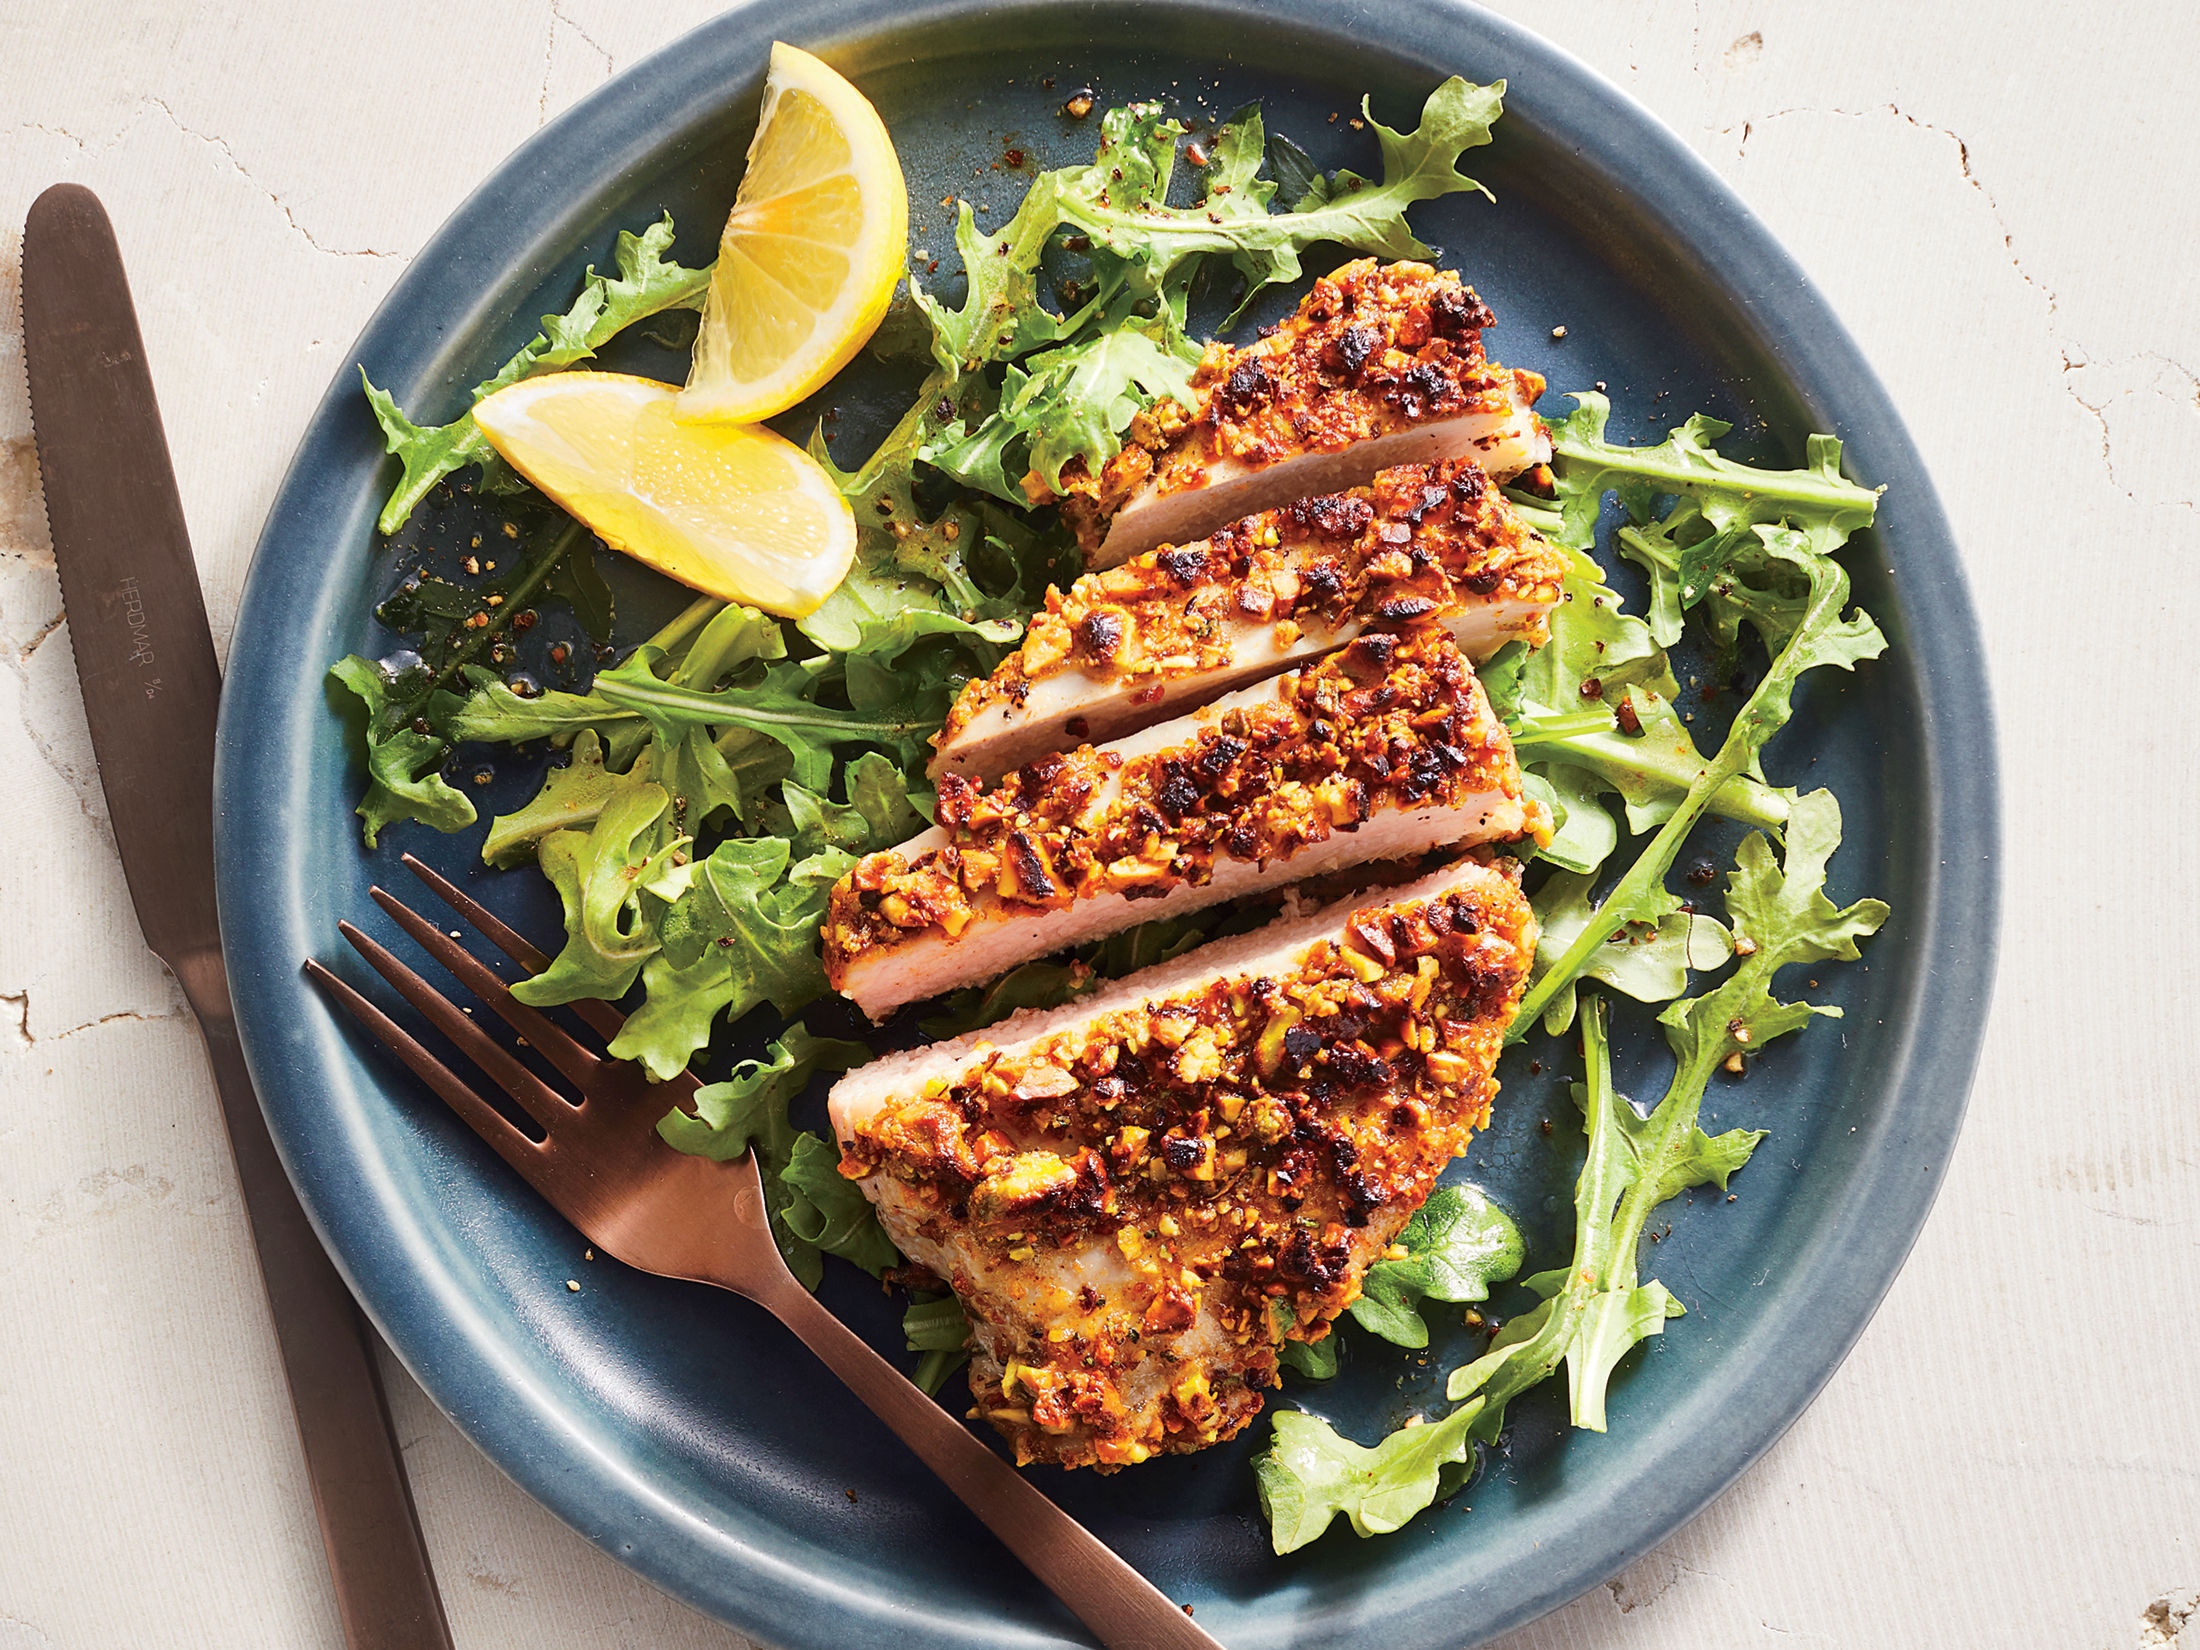 Pistachio-Crusted Pork Cutlets